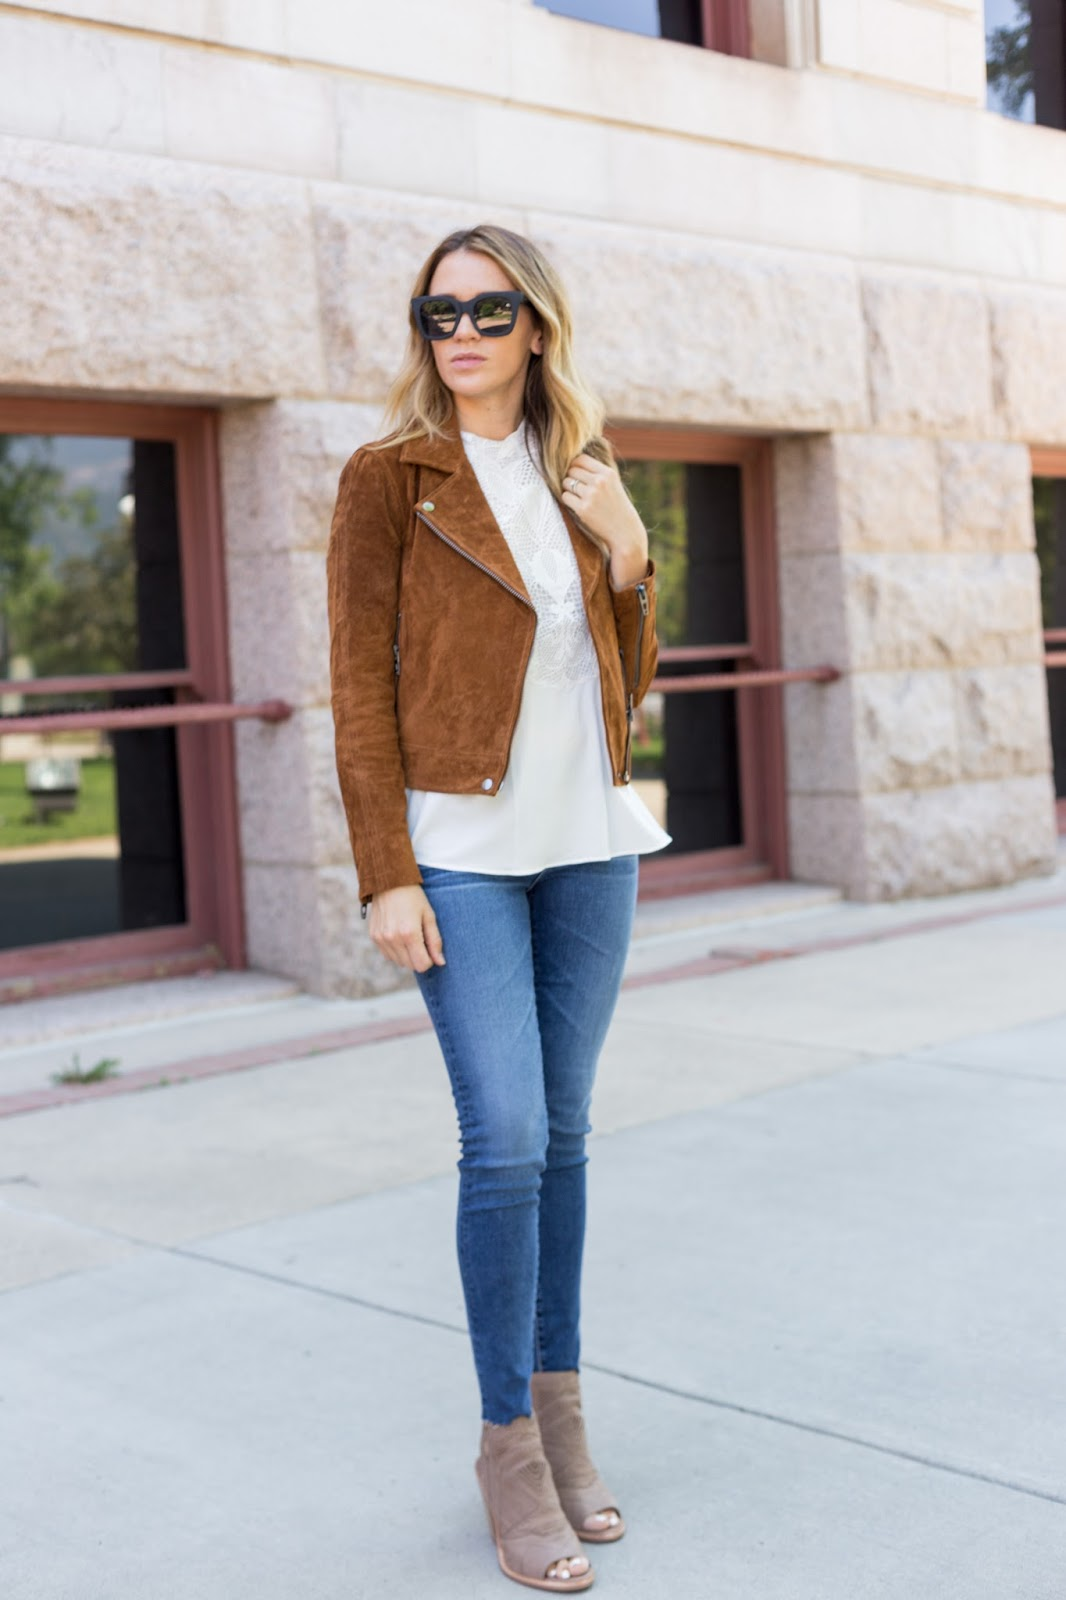 Best Suede Jacket for Fall = The Must Have Brown Suede Jacket For Fall by Colorado fashion blogger Eat Pray Wear Love